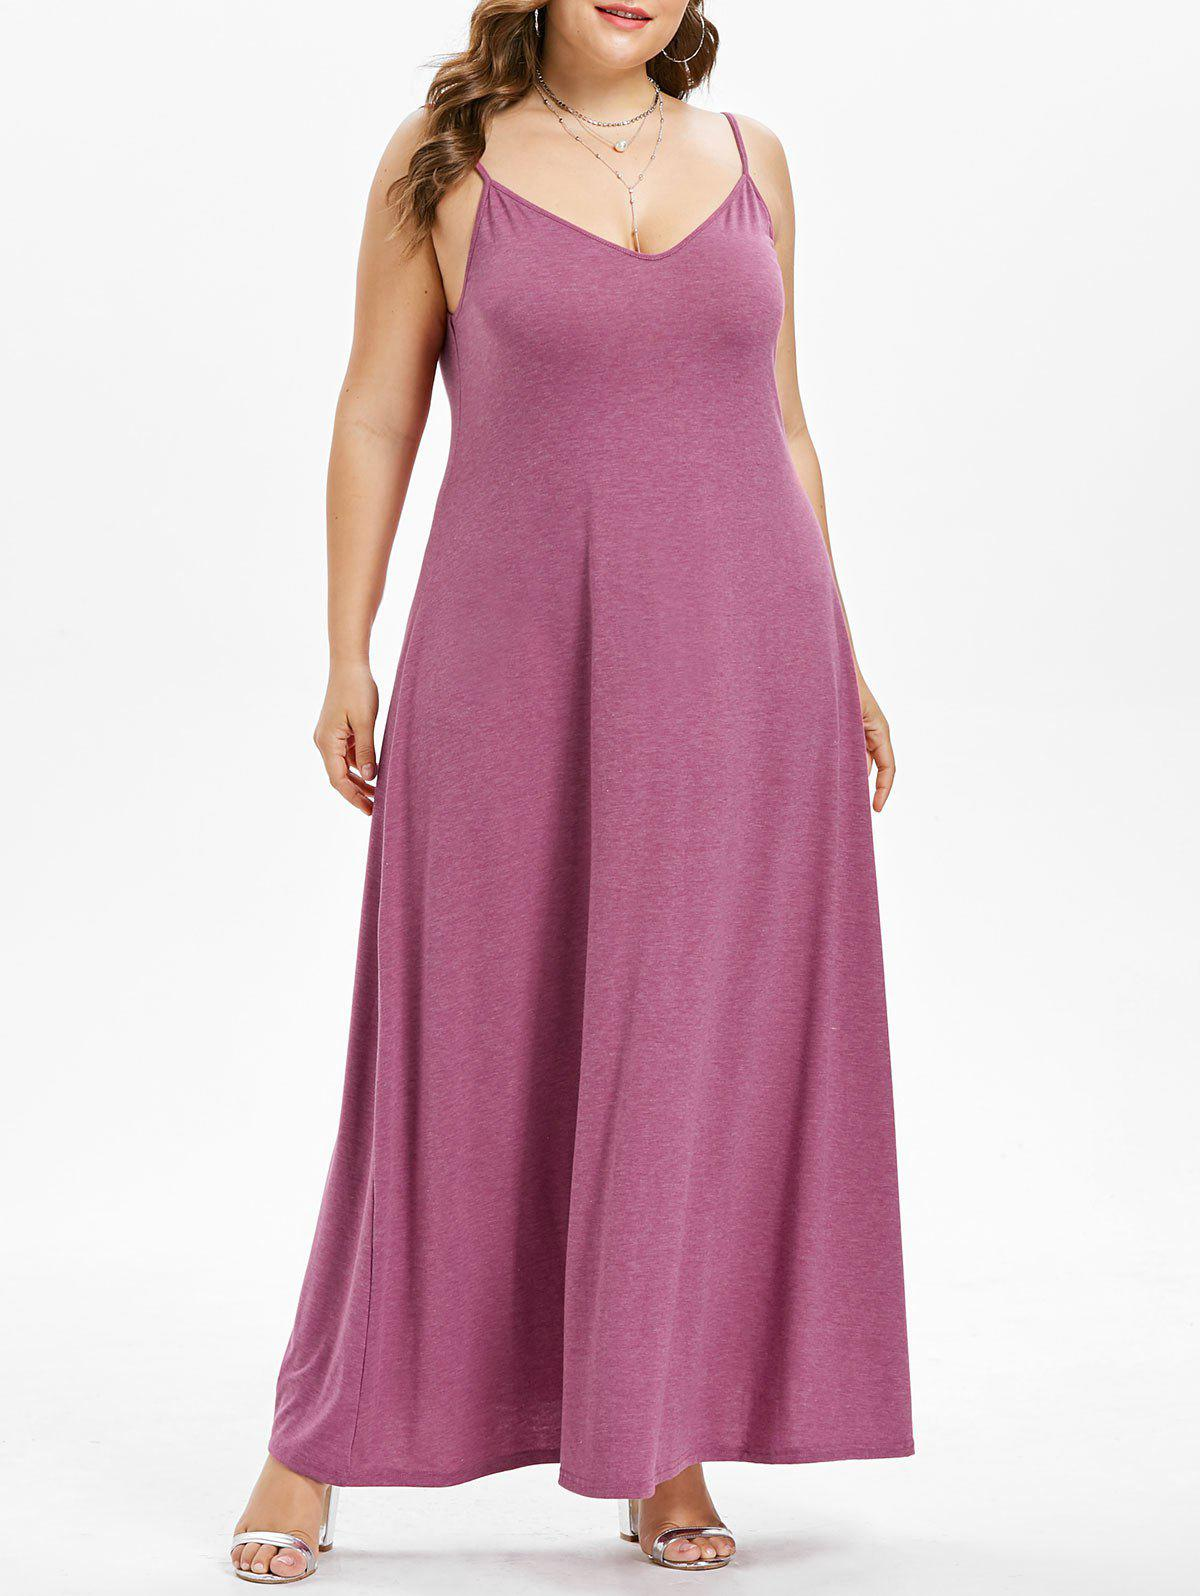 Buy Plus Size Spaghetti Strap Maxi Dress